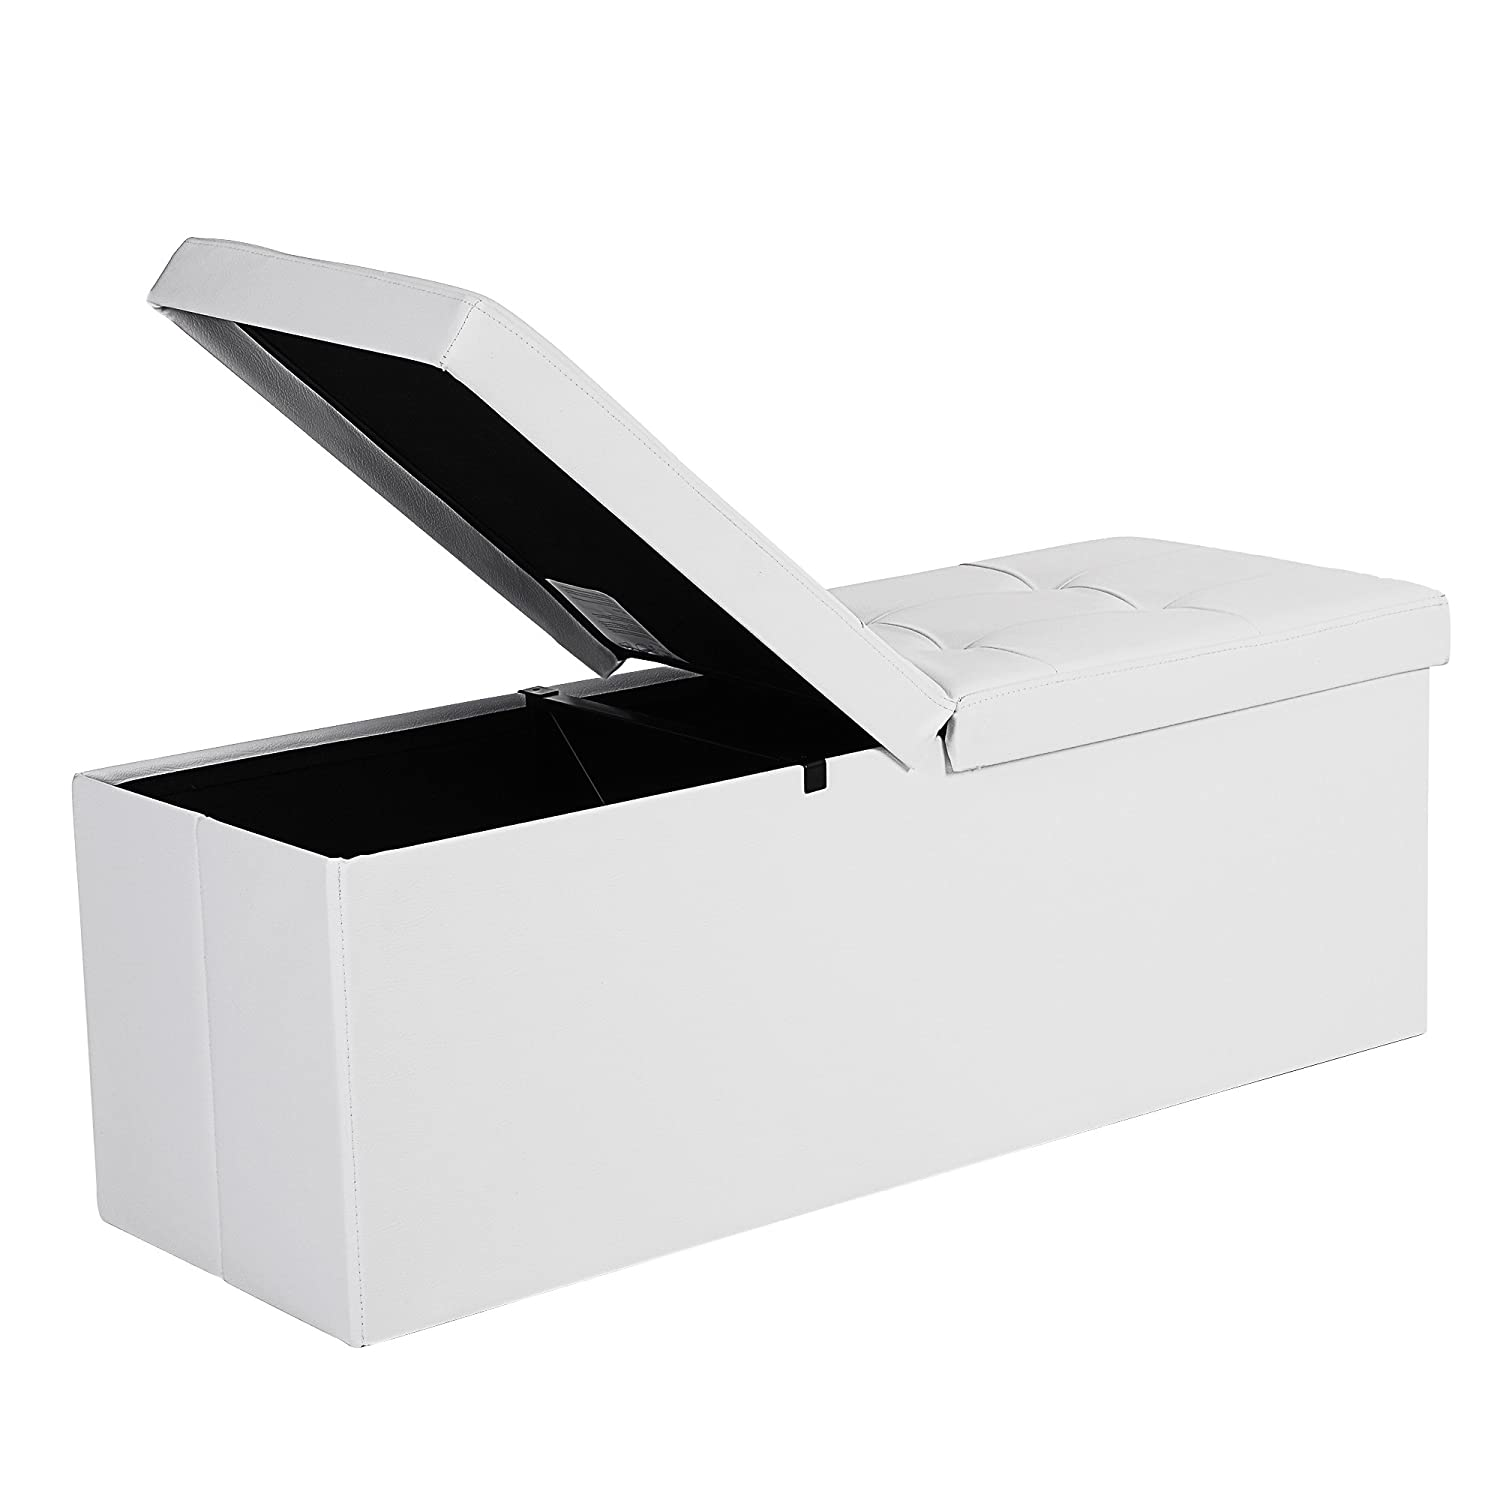 "SONGMICS 43"" L Folding Storage Ottoman Bench with Flipping Lid, Storage Chest Footrest Padded Seat with Iron Frame Support, White ULSF75WT"